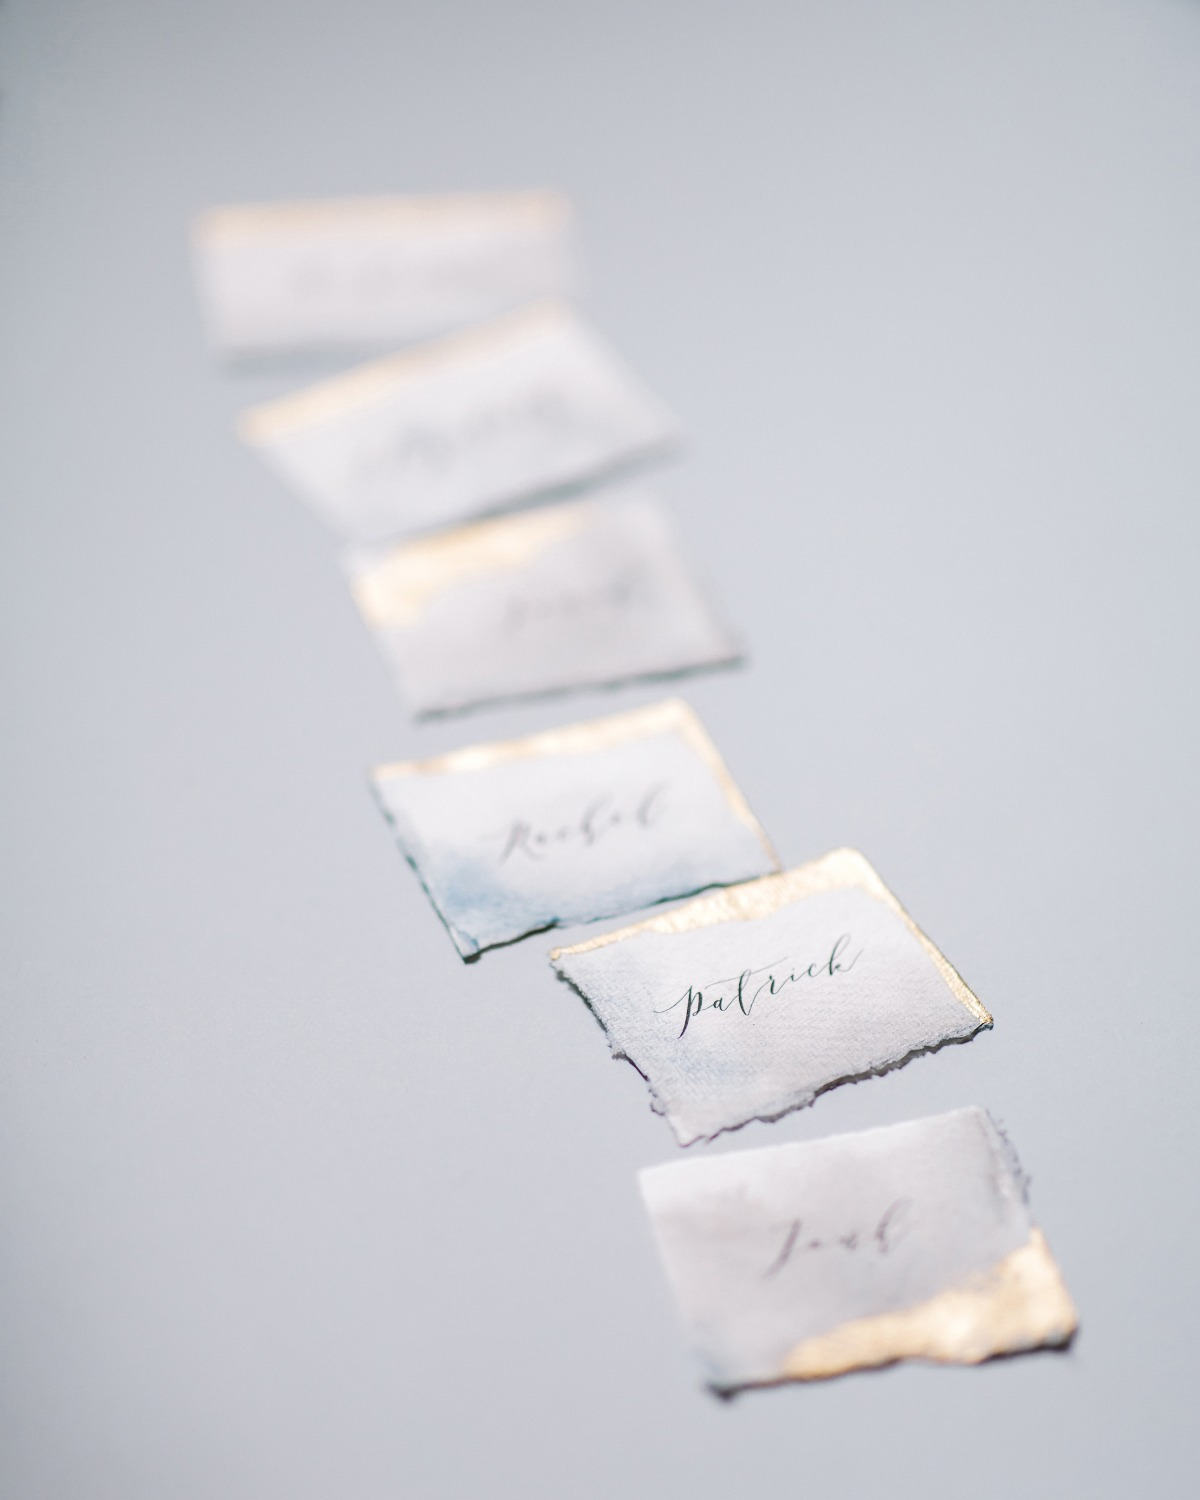 escort cards on handmade paper with gold edges designed by A Pajarita